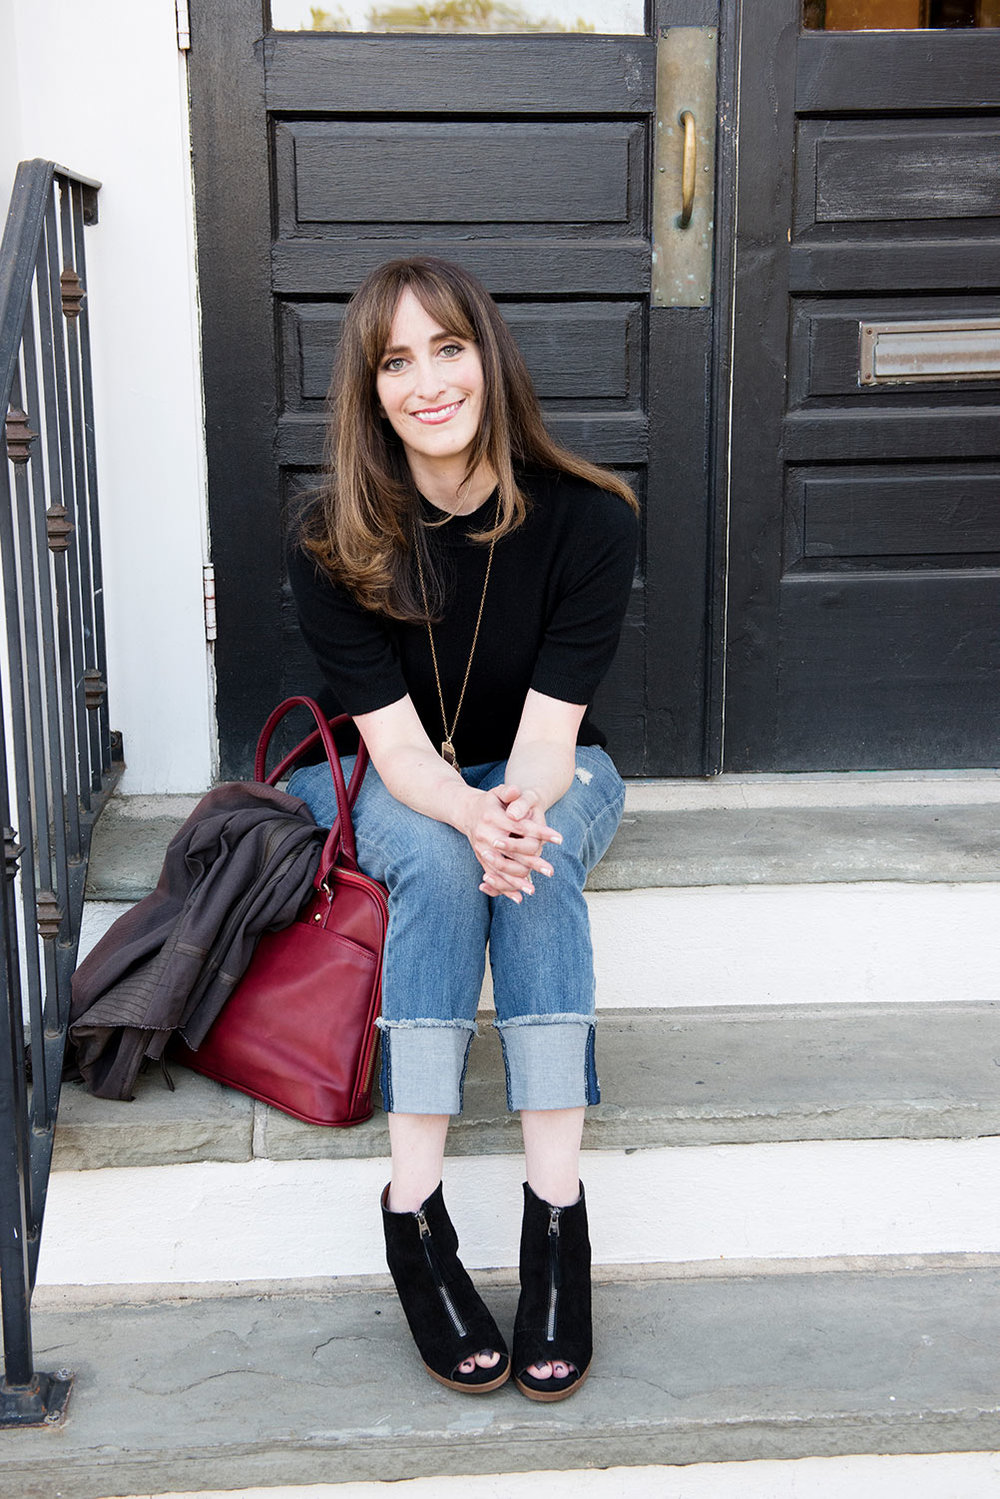 Photo of Jill Wichner, Copywriter and Content Strategist